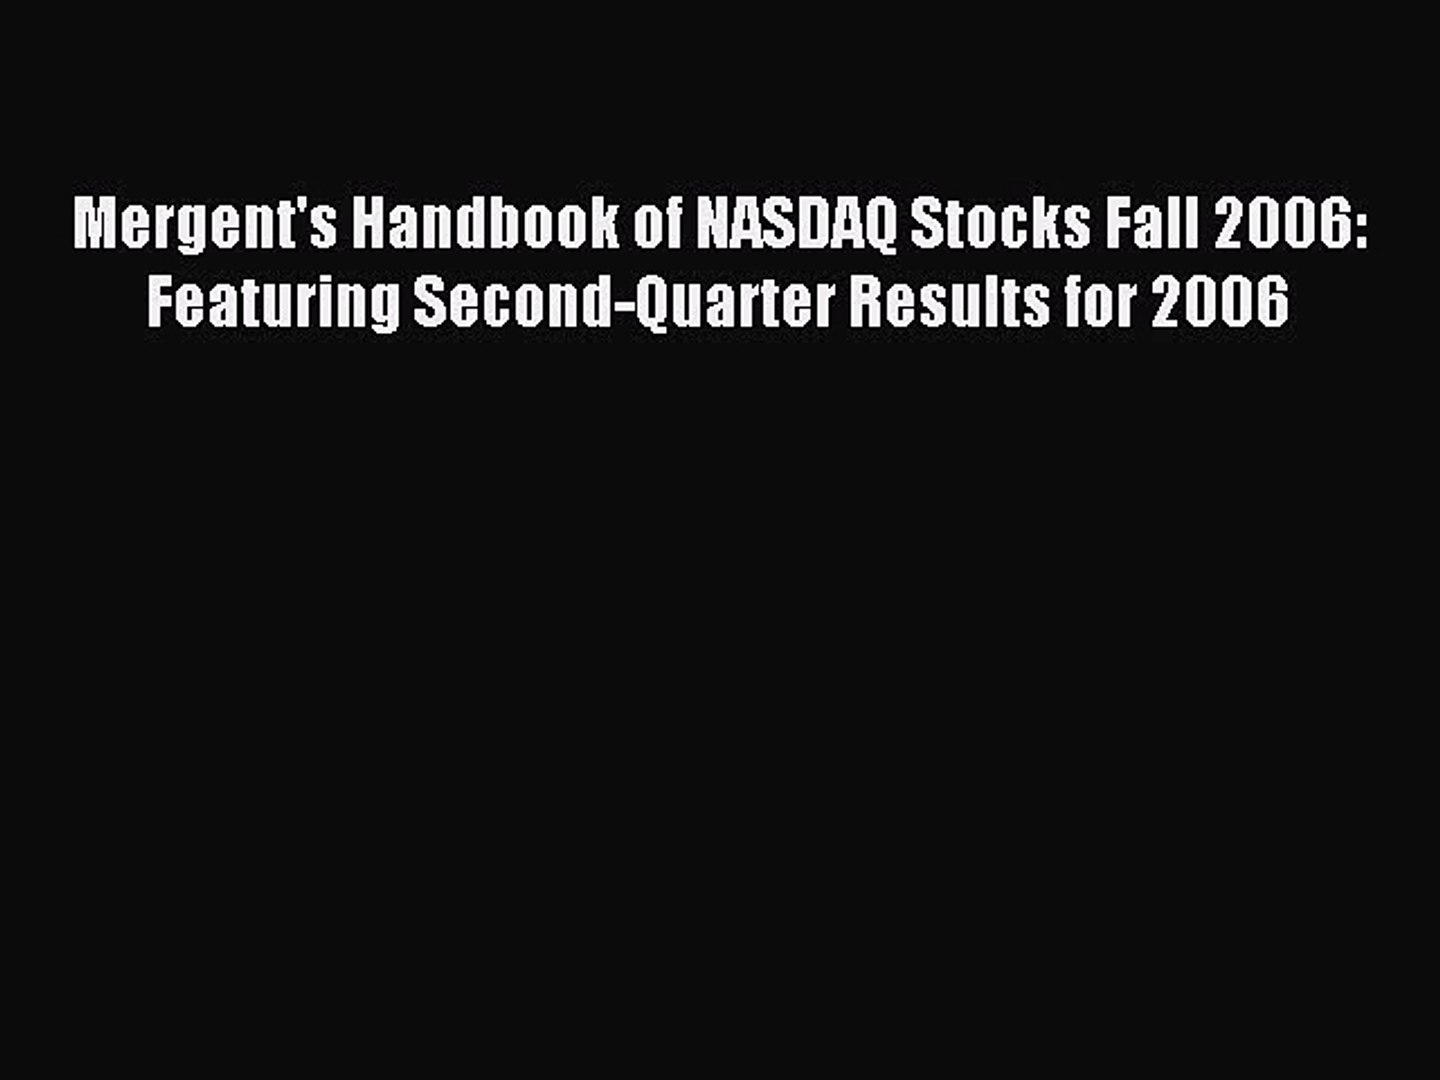 Read Mergent's Handbook of NASDAQ Stocks Fall 2006: Featuring Second-Quarter Results for 2006